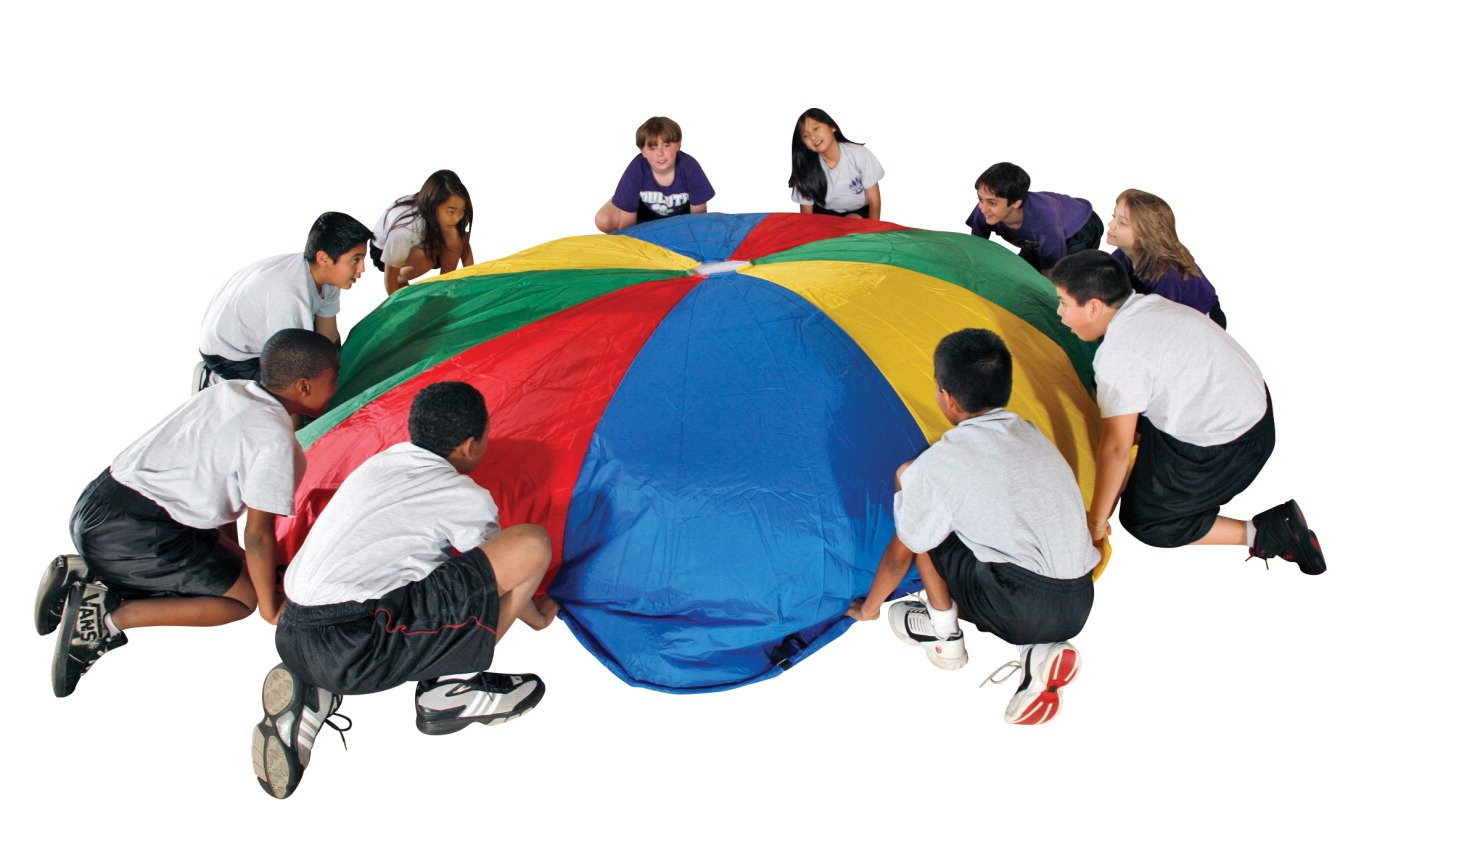 School Smart Durable Nylon Parachute with Carrying Bag - 24 foot - 20 Handles